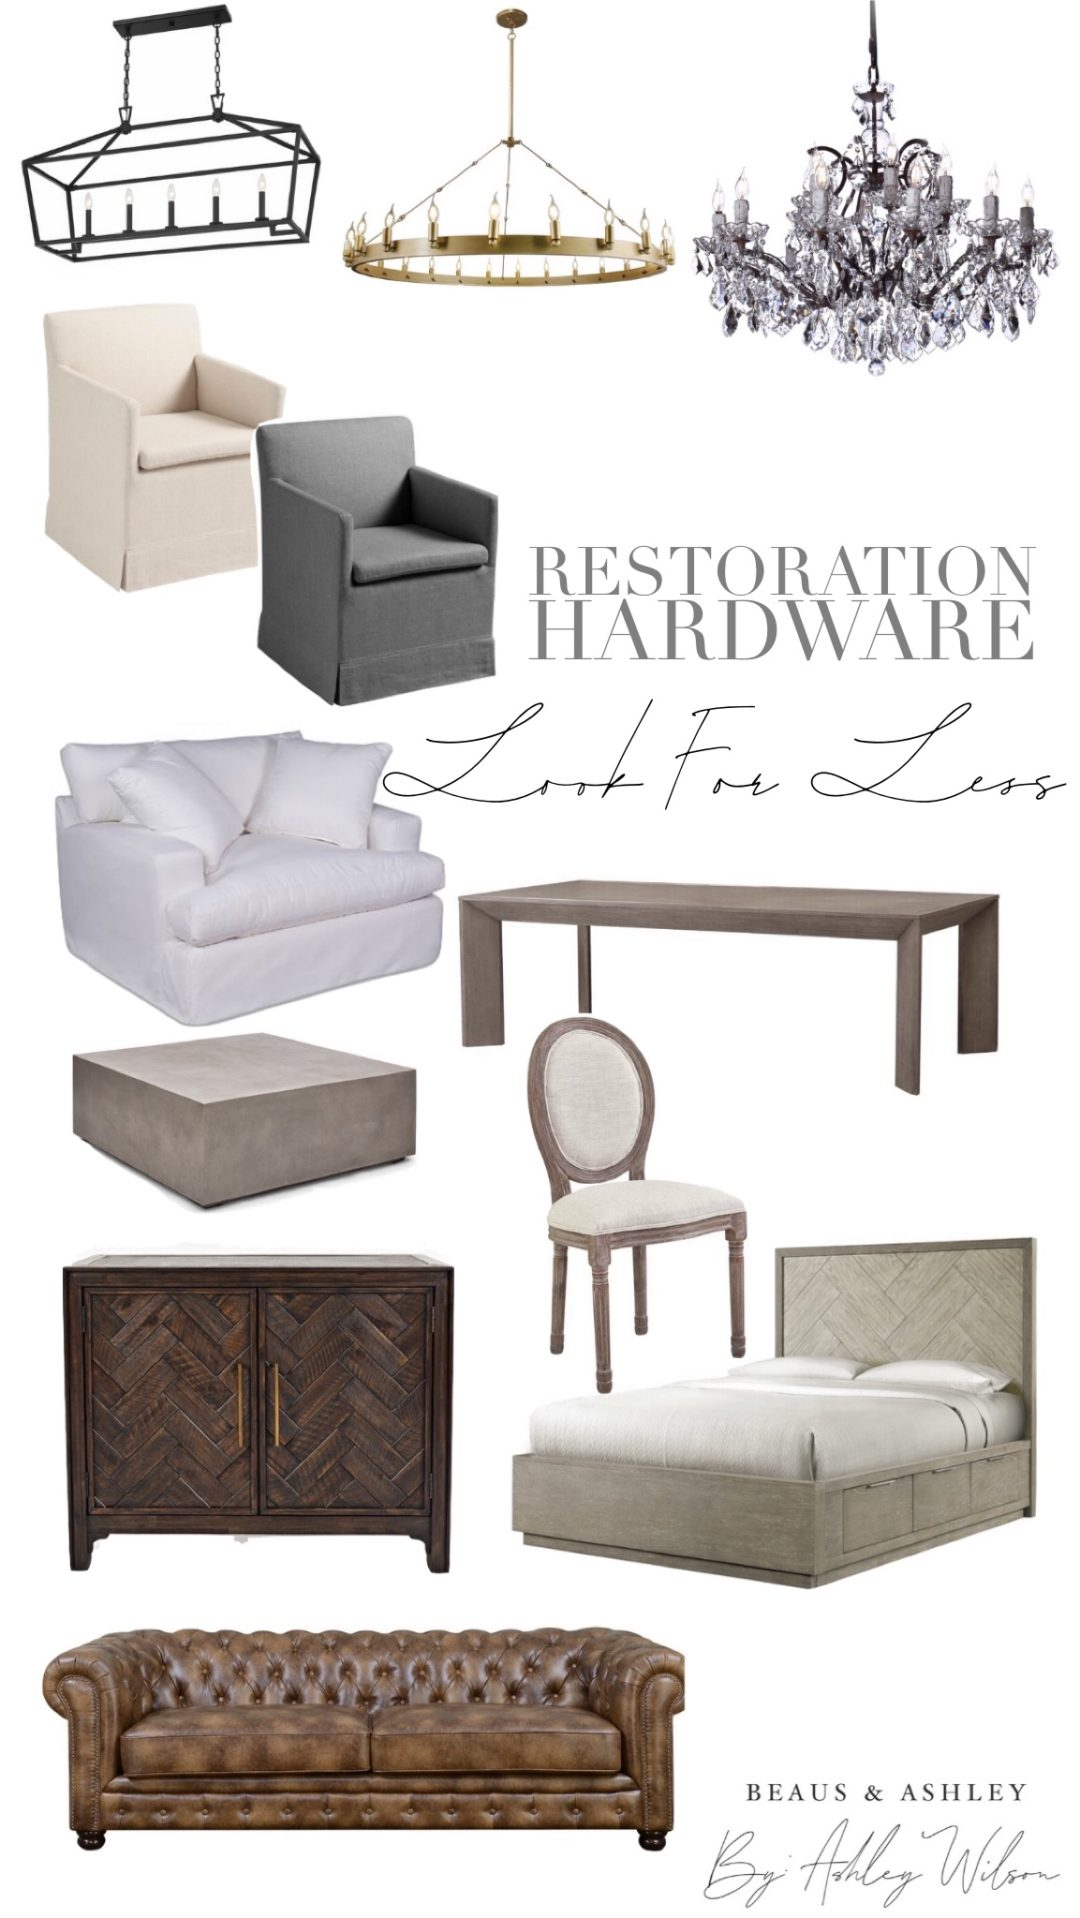 Restoration Hardware Look Alike Items